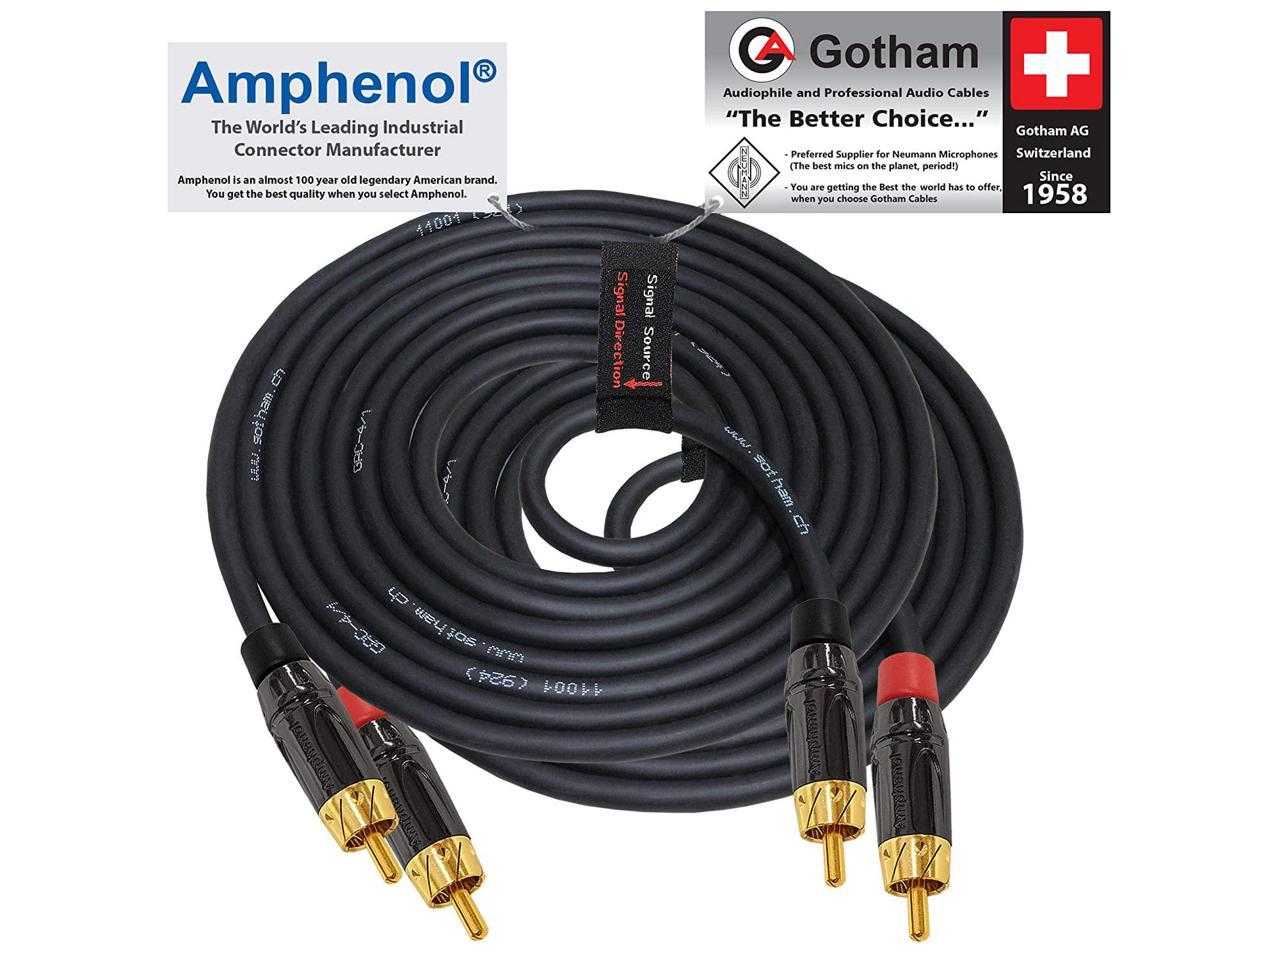 Gold Plated RCA Connectors 10 Foot RCA Cable Pair Gotham GAC-4//1 Directional Star-Quad Audio Interconnect Cable with Amphenol ACPR Die-Cast Black